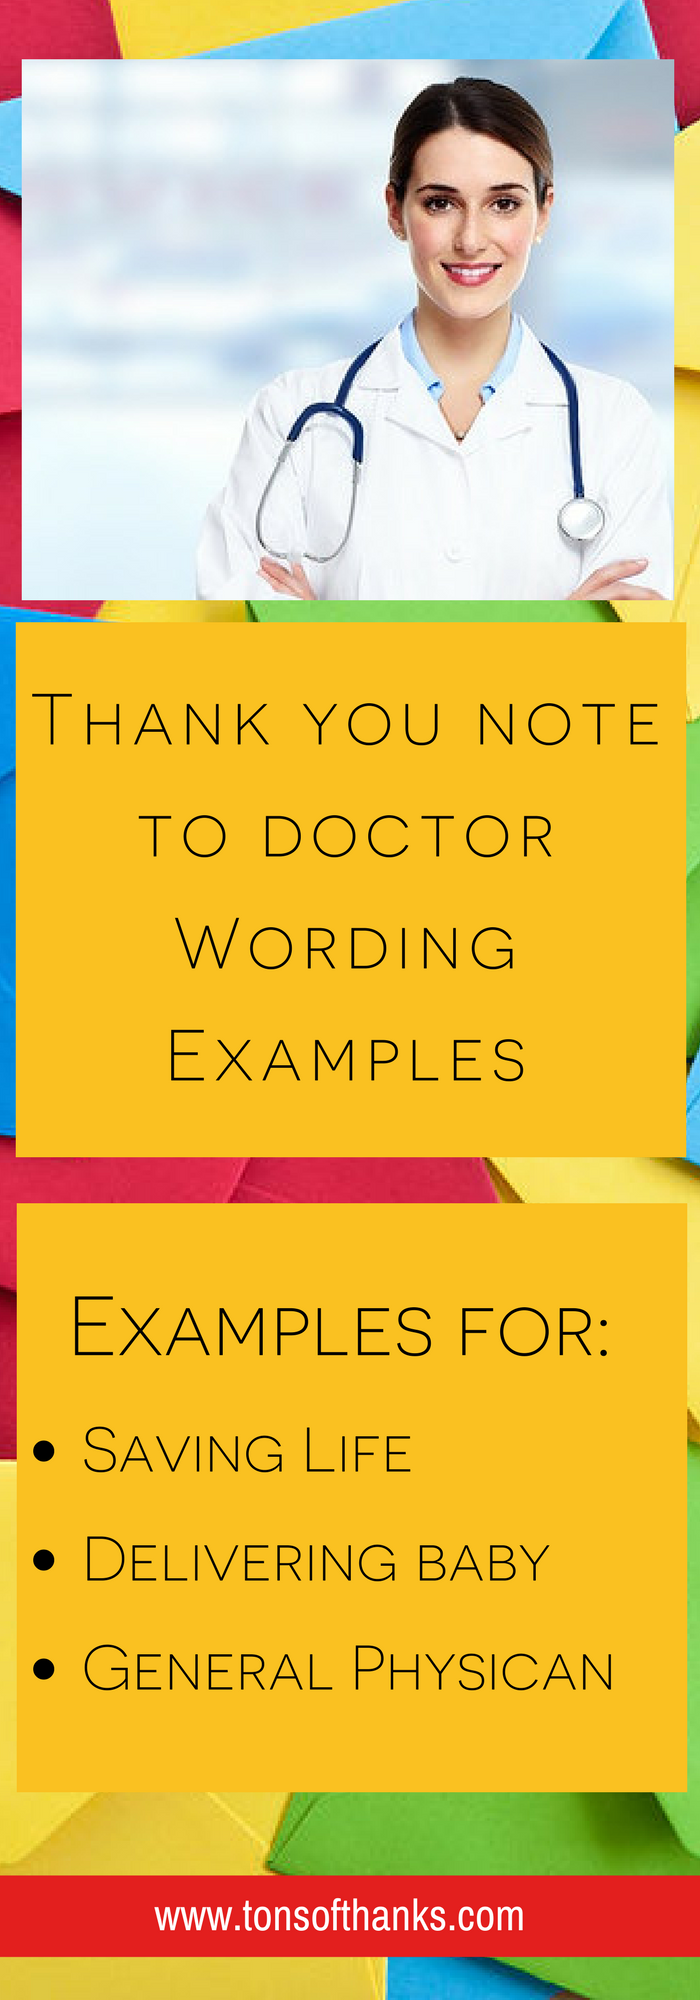 Thank You Note To Doctor Wording Examples.